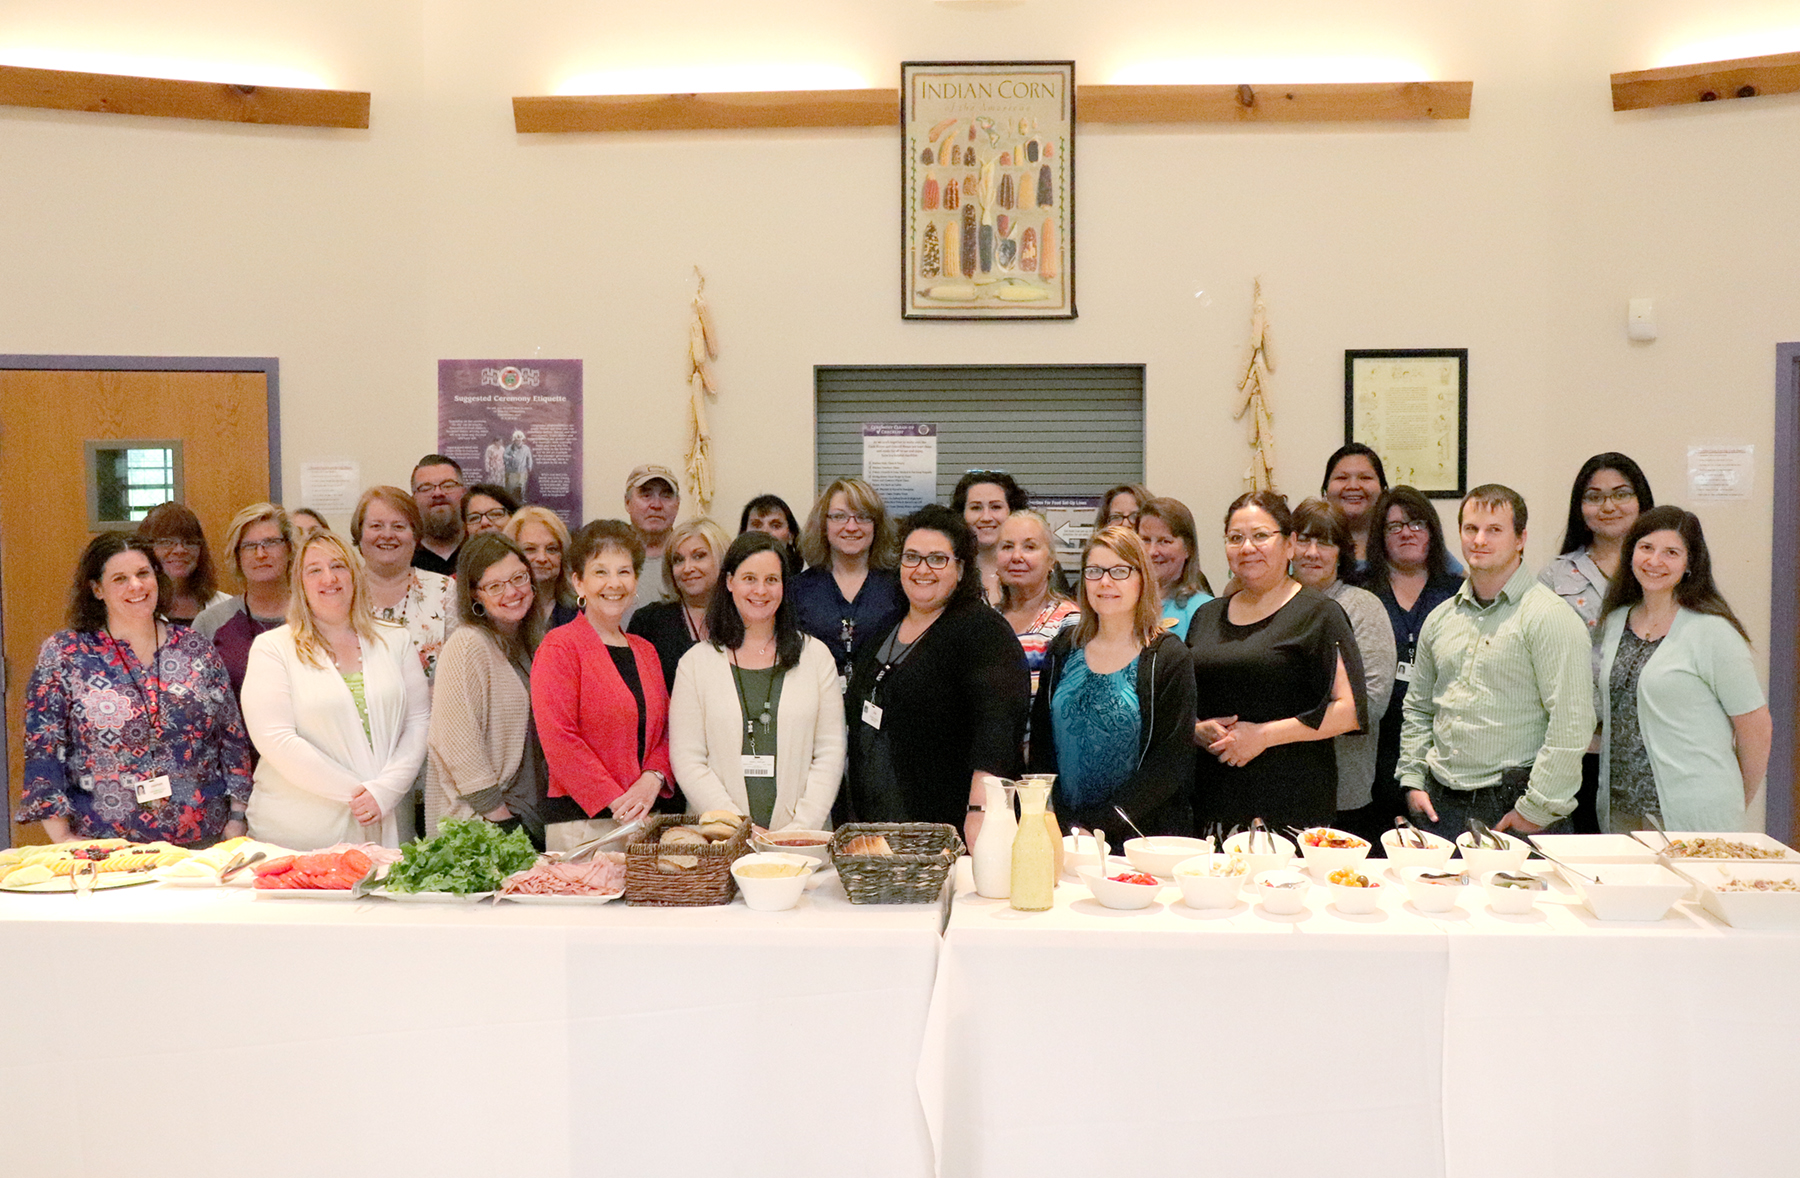 Employees Celebrate Another Year Completing Health Program